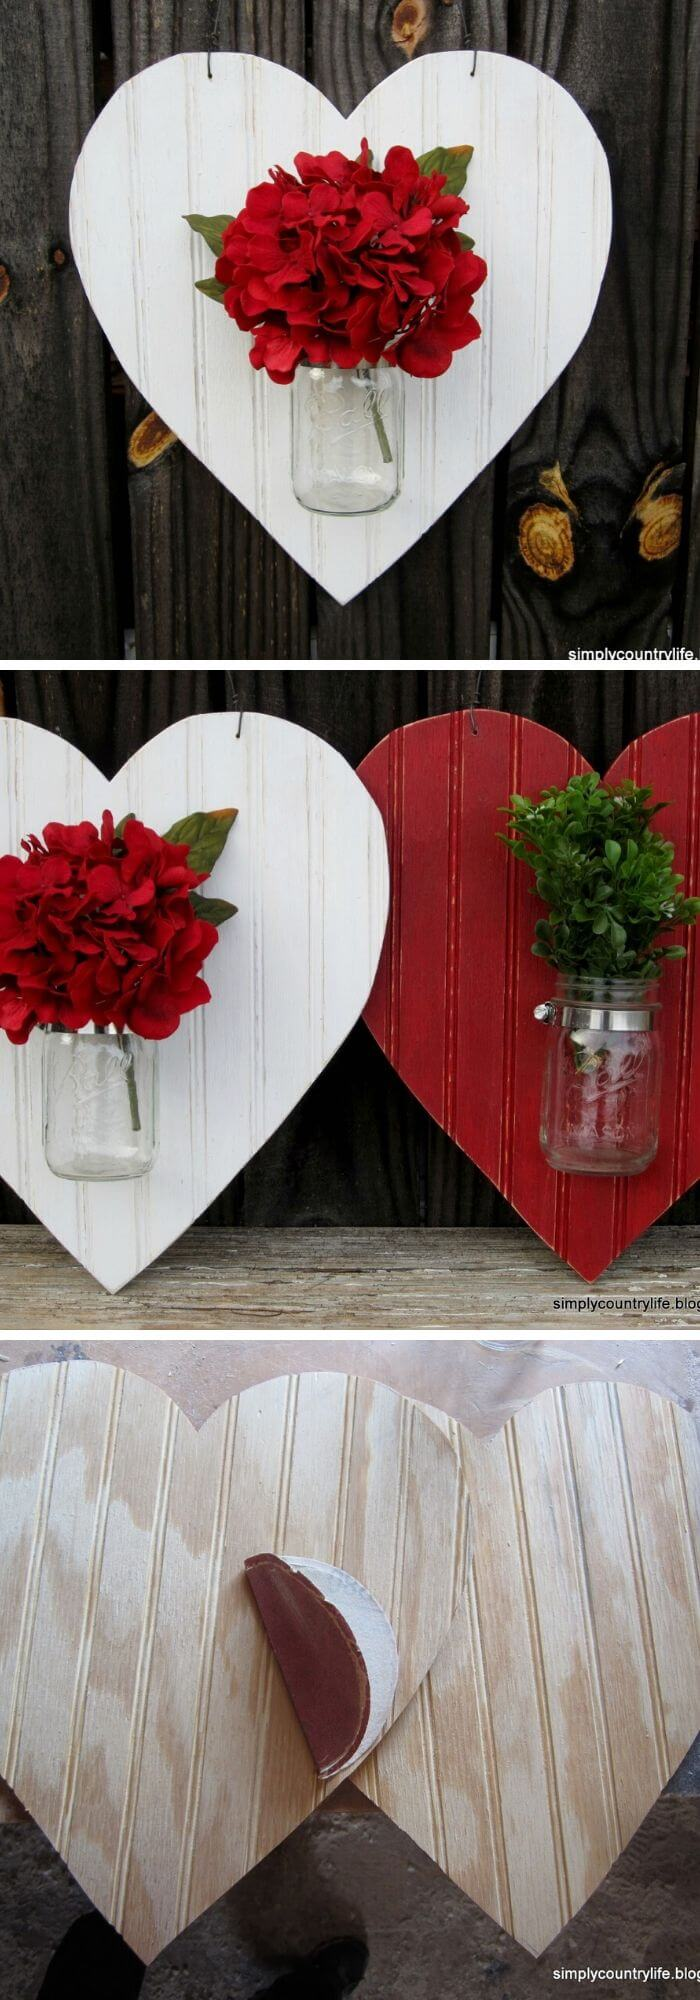 The mounted Mason jar vases - Rustic Wood Heart Projects